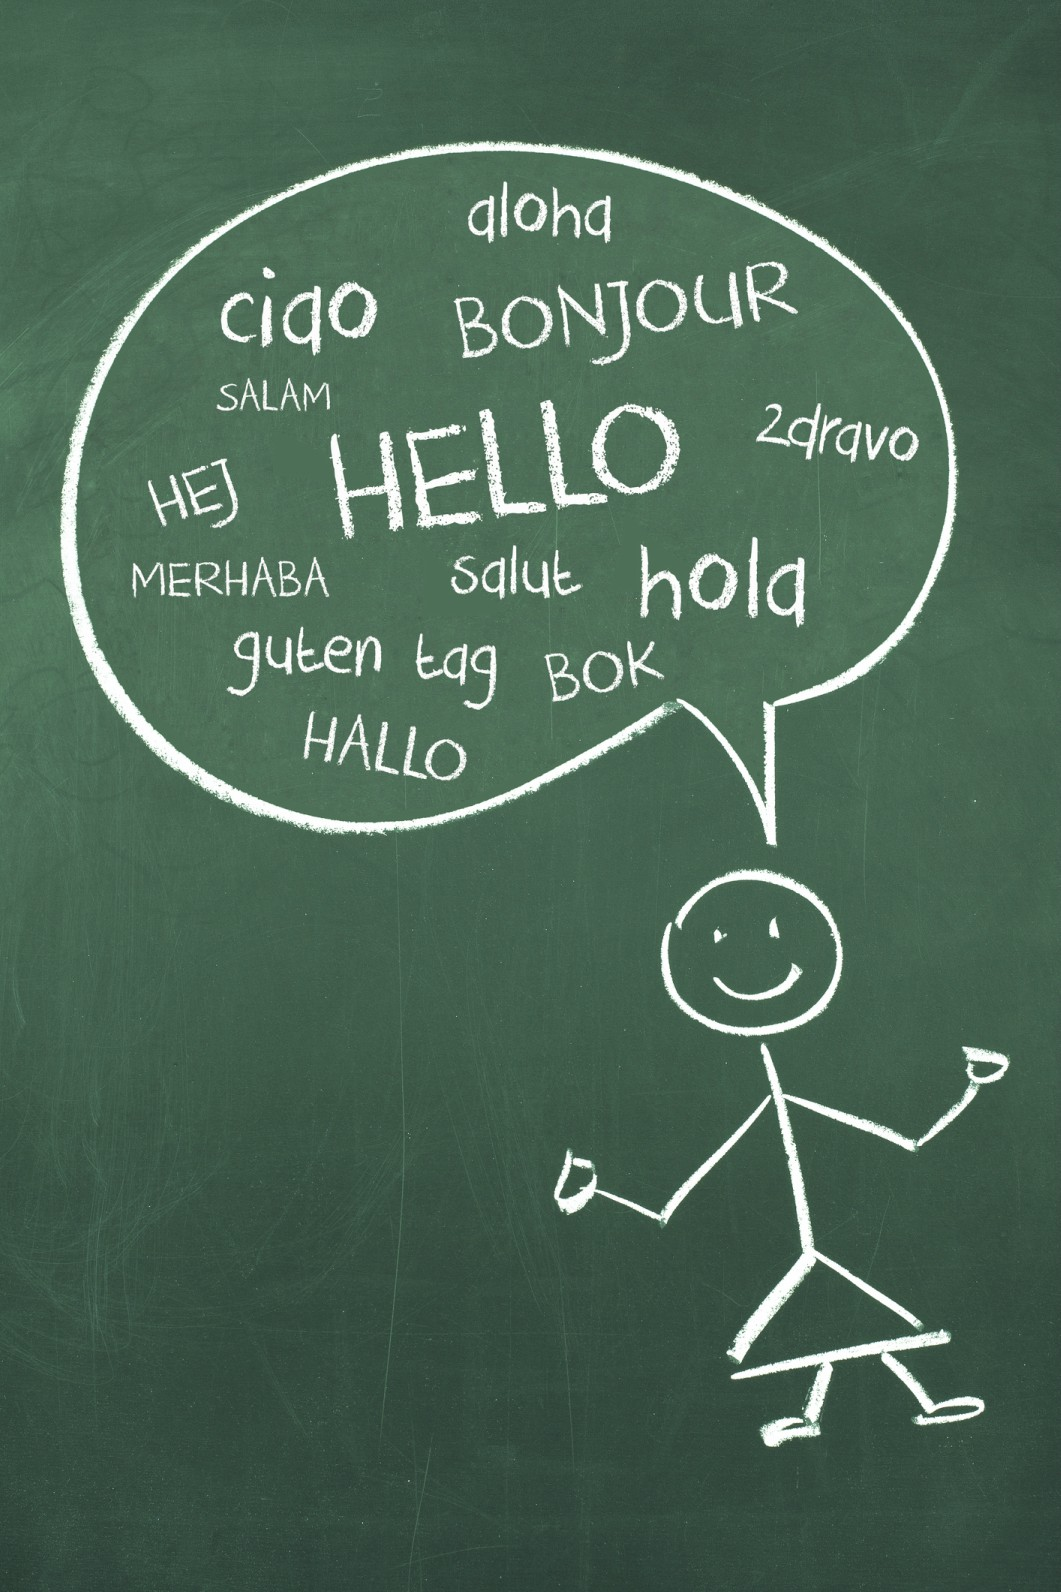 Bilingual teachers instruct in two languages